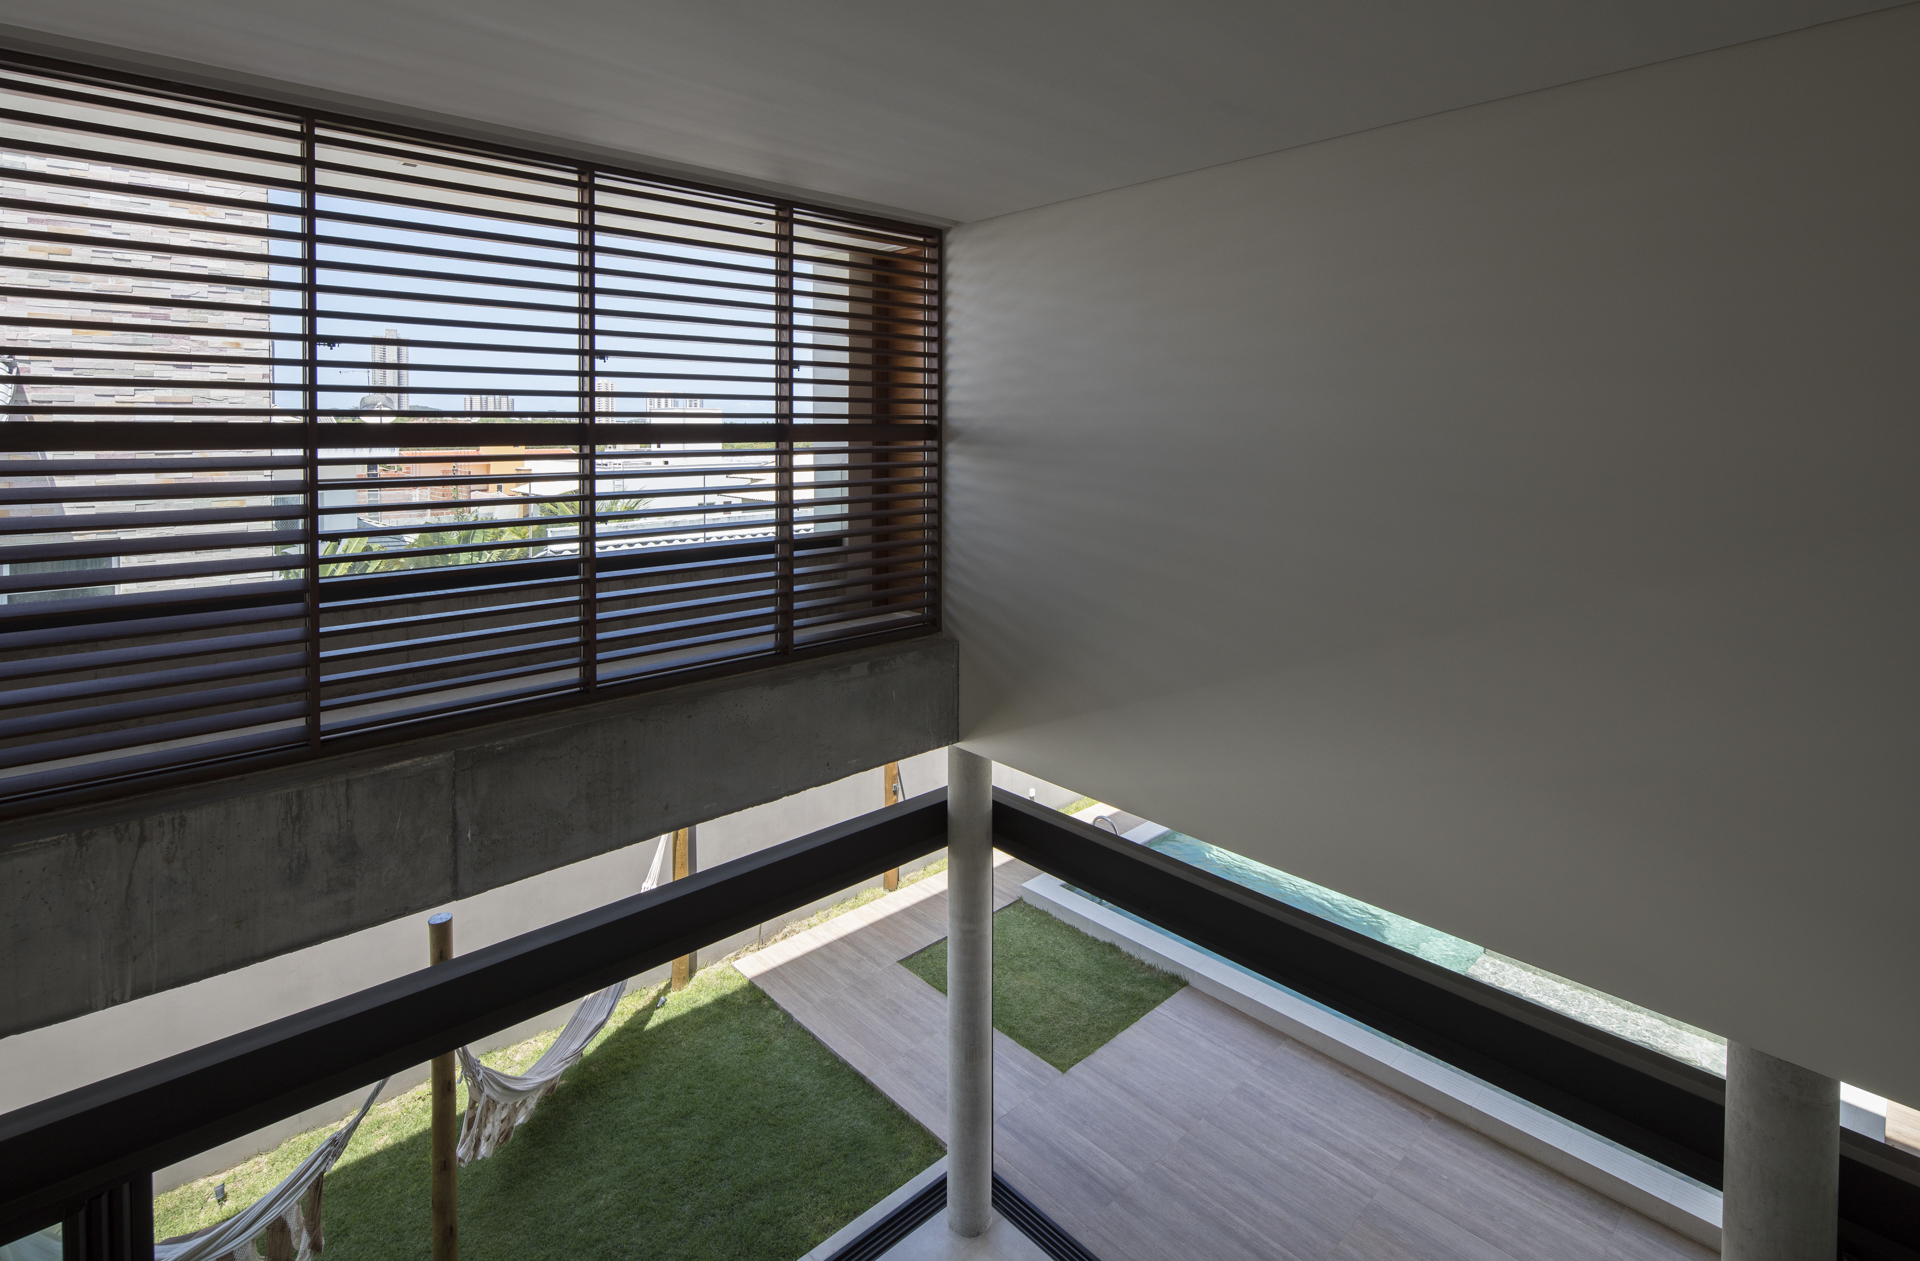 38_CASA_IF_-_Martins_Lucena_Arquitetos-34.jpg